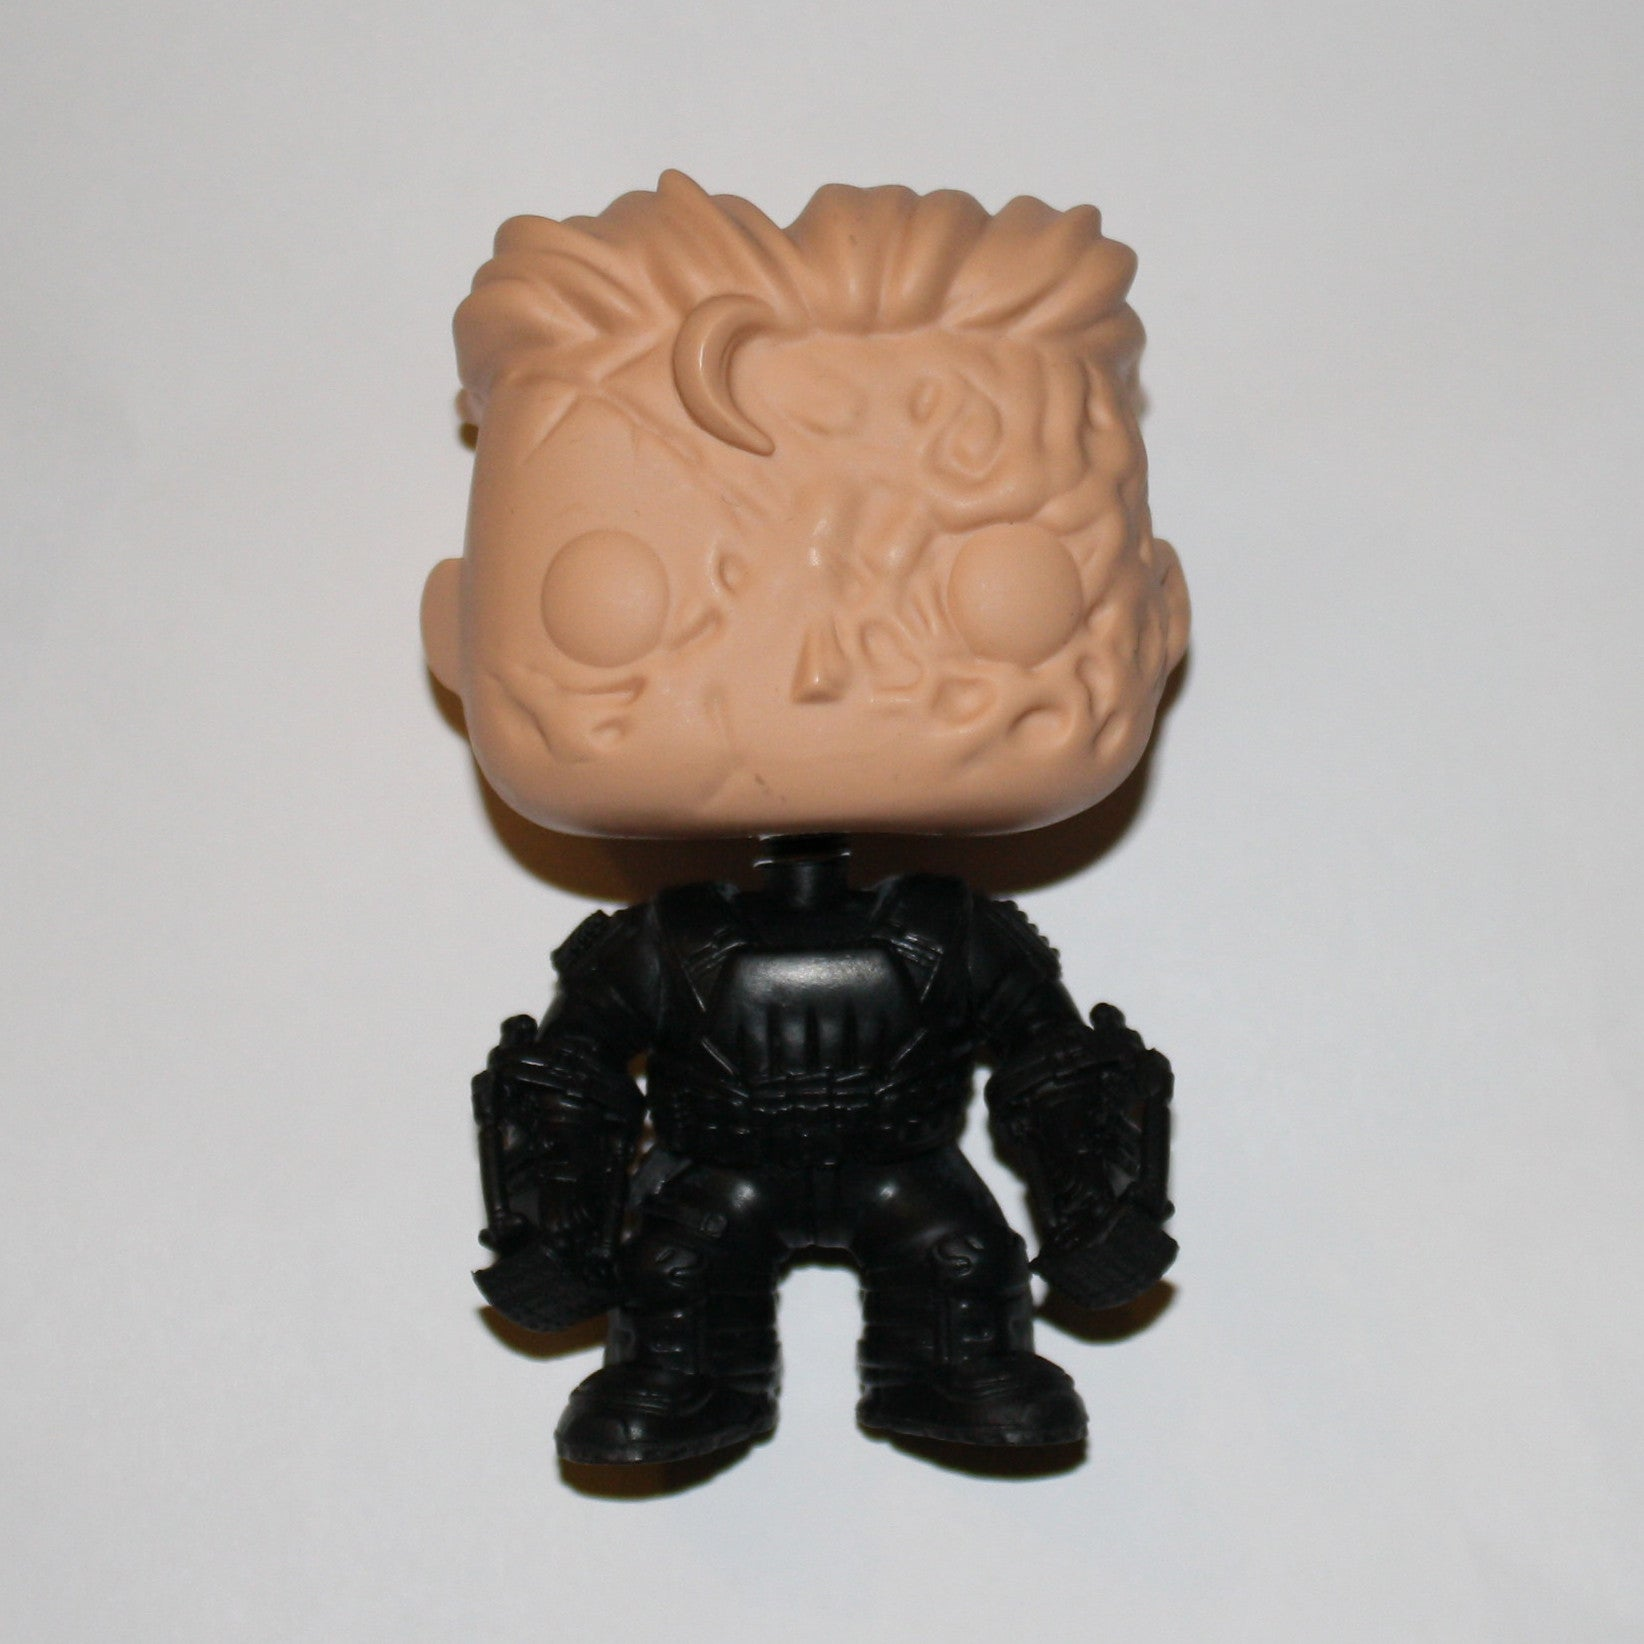 Crossbones Unmasked [Captain America: Civil War] Proto